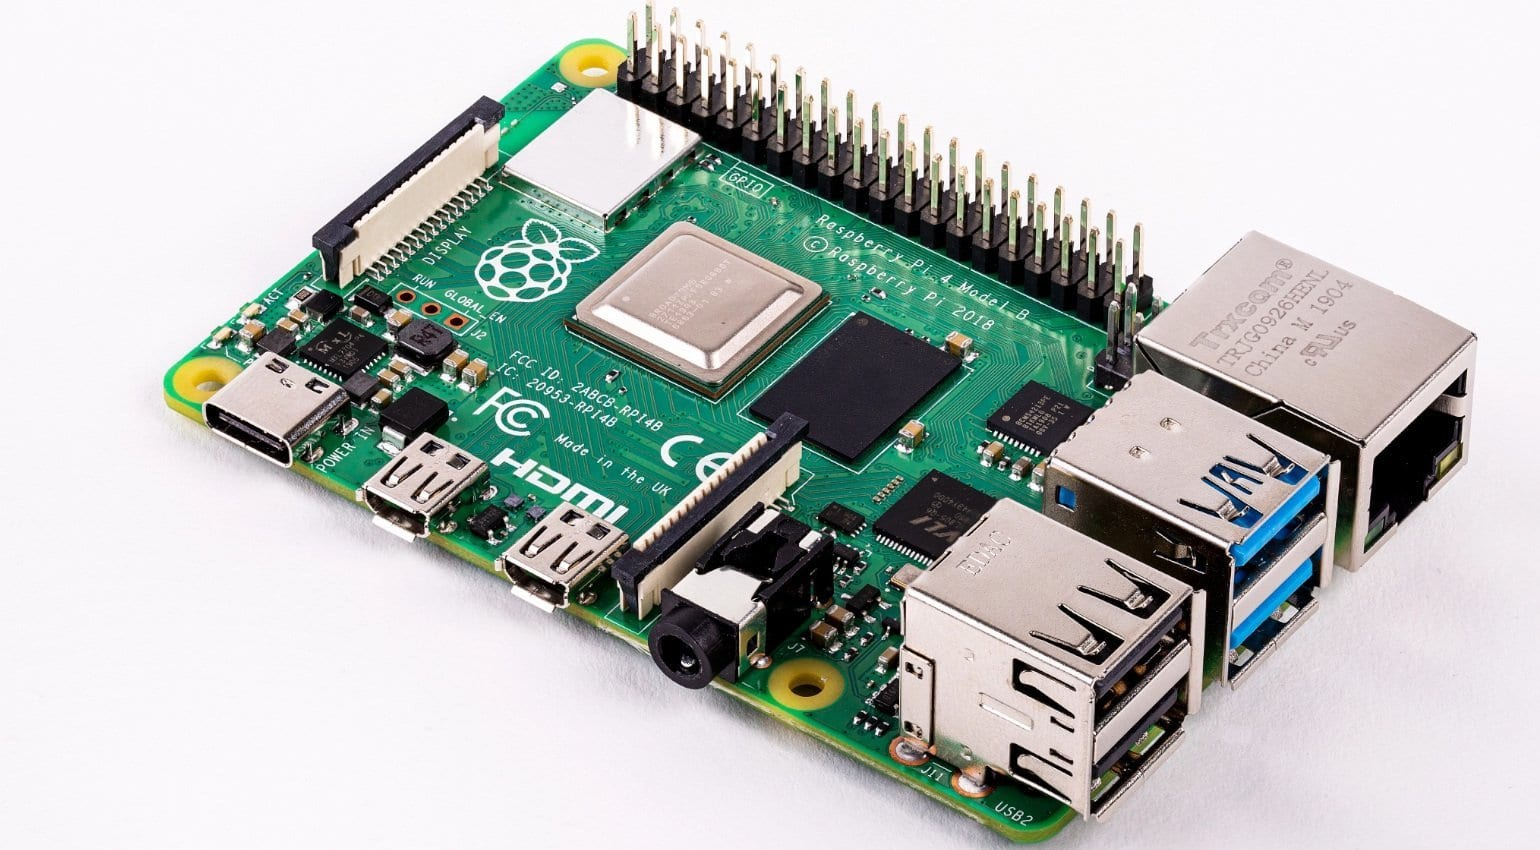 Will Raspberry Pi soon replace our DAWs? - gearnews com